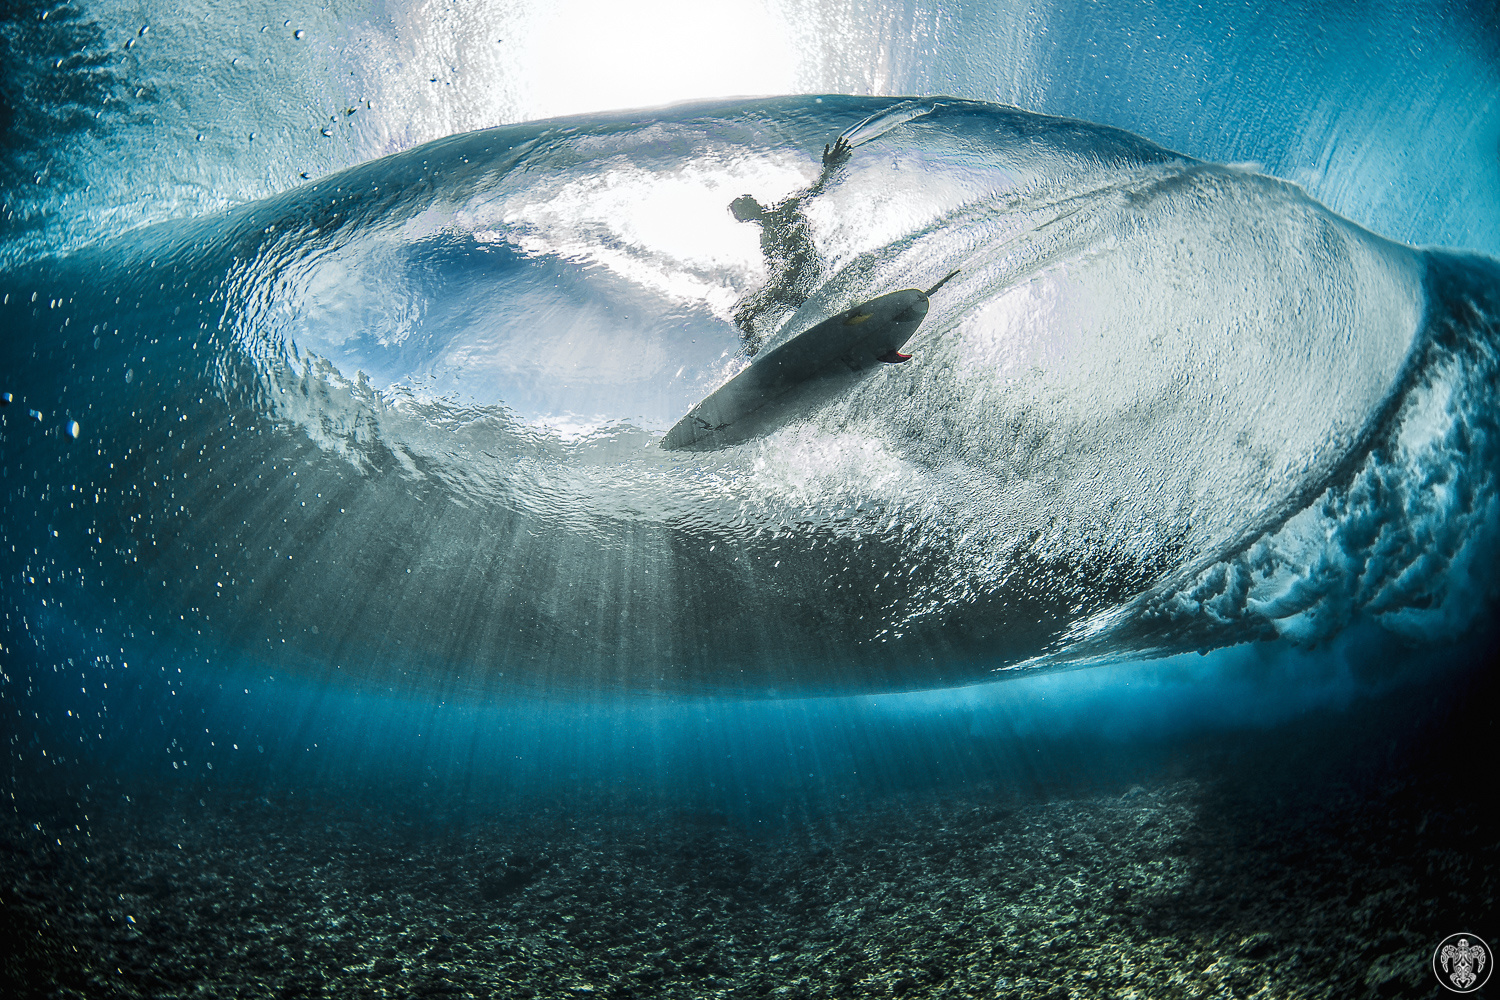 ben thouard, tahiti, wave, surf photography, underwater photography